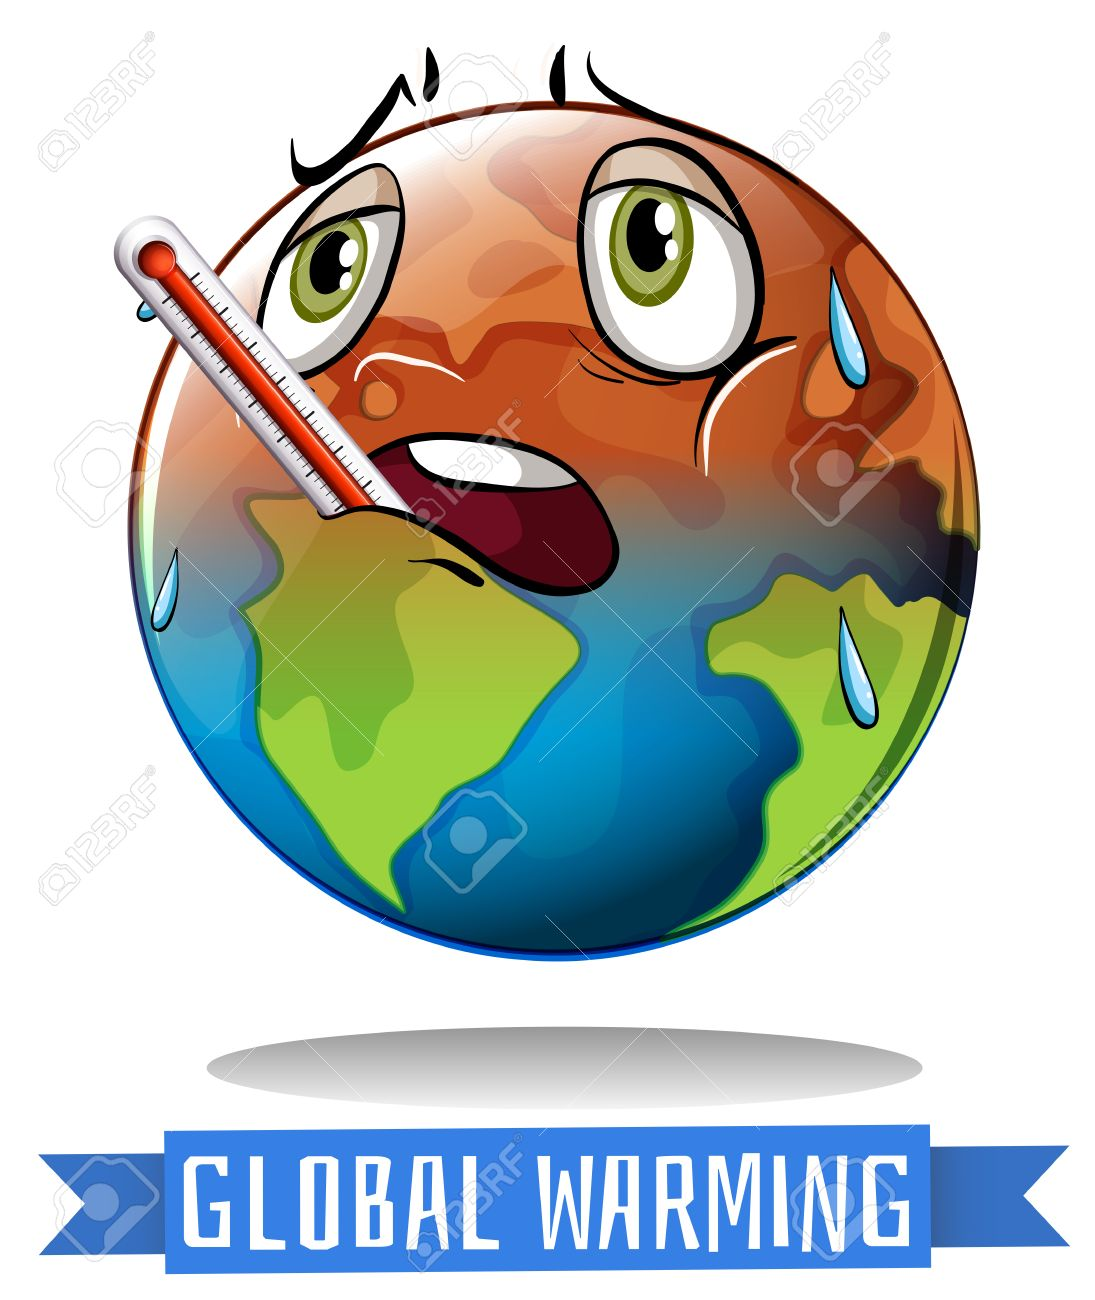 1095x1300 Global Warming Stock Photos. Royalty Free Business Images